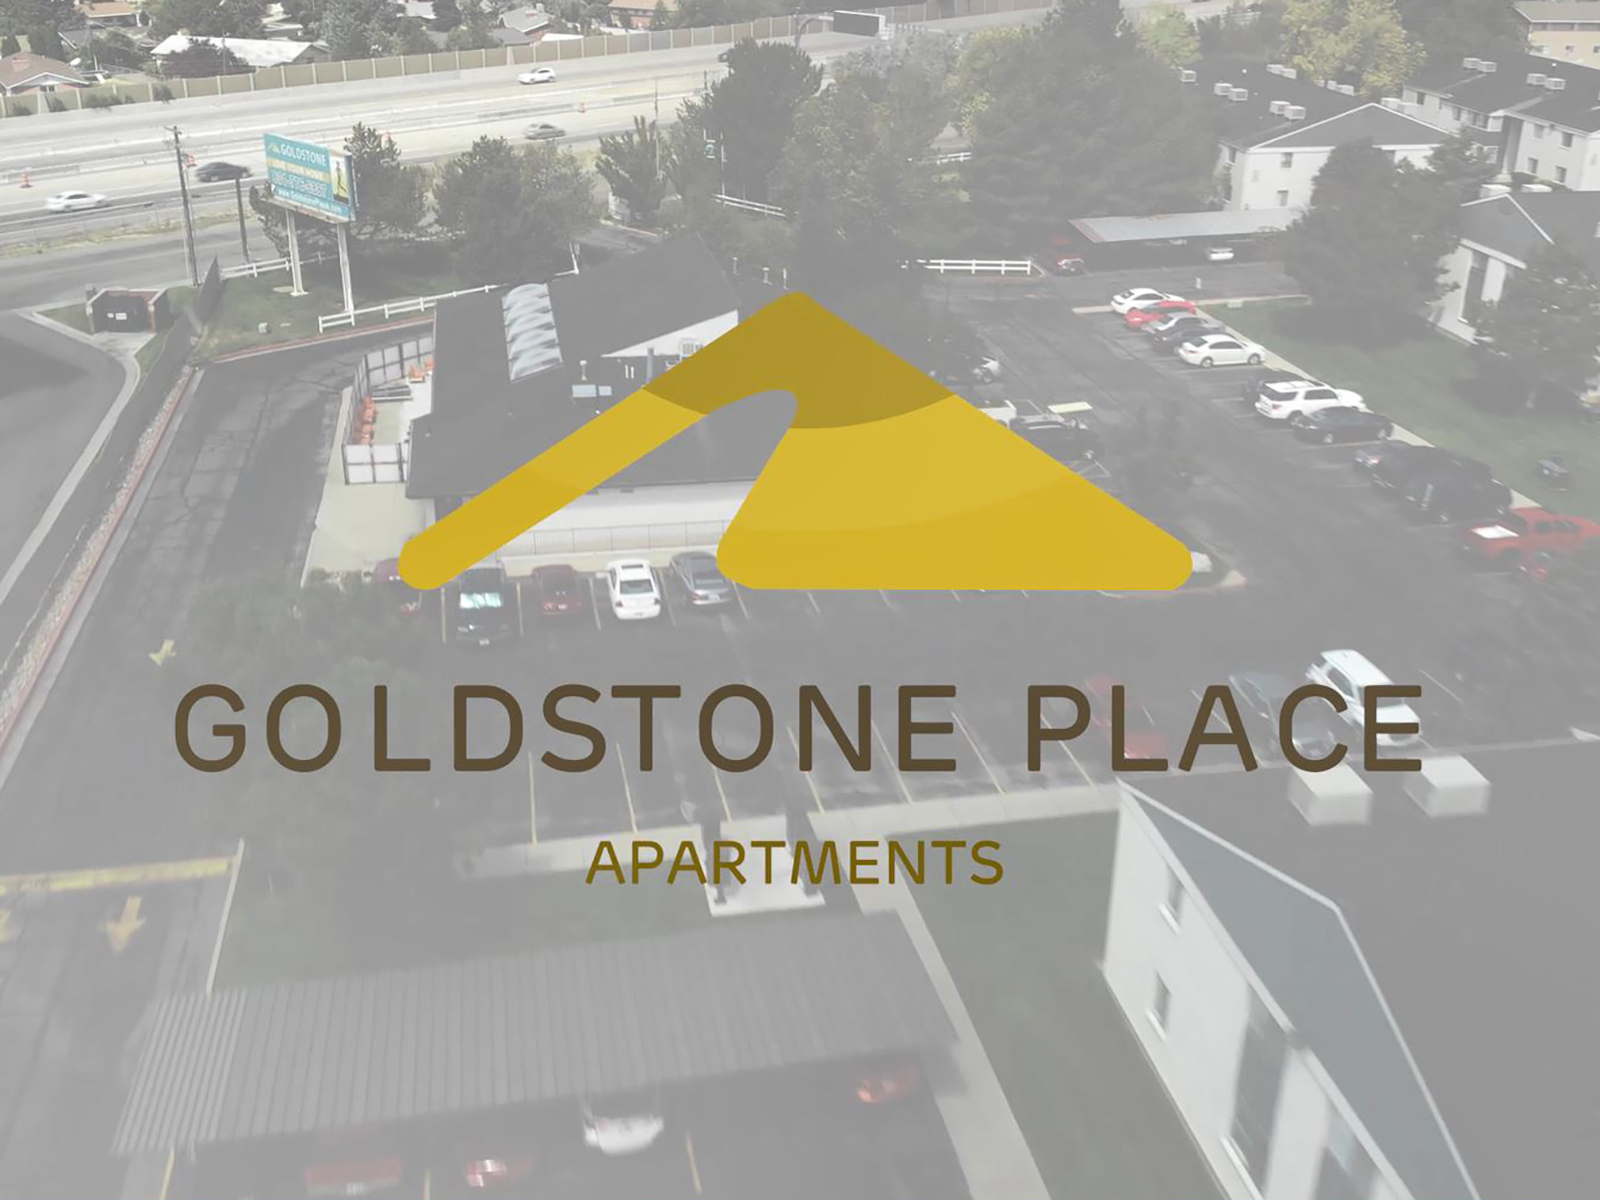 Experience Goldstone Place Apartments, and dive into a video tour of our thriving community. We're ready to show you all of the things that make us one of a kind.